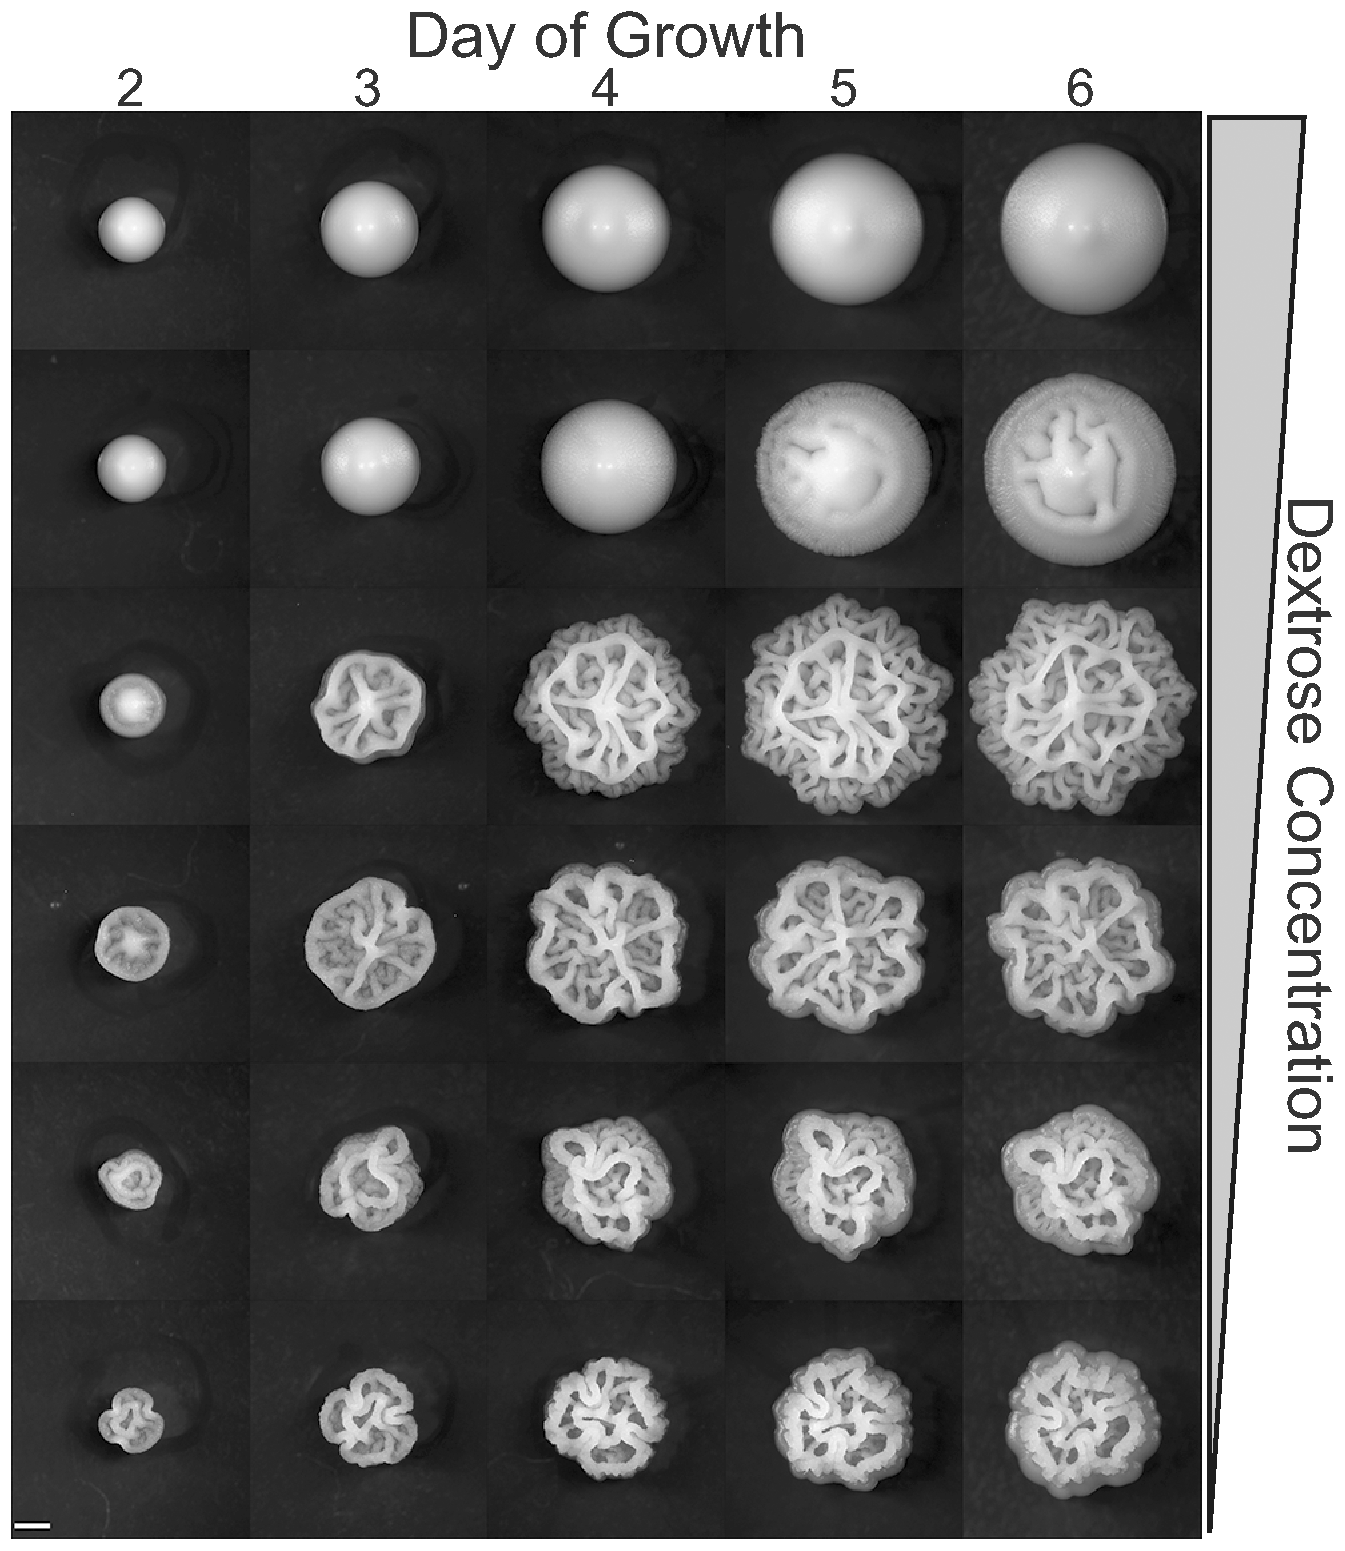 Colony morphology as a function of time and dextrose concentration.